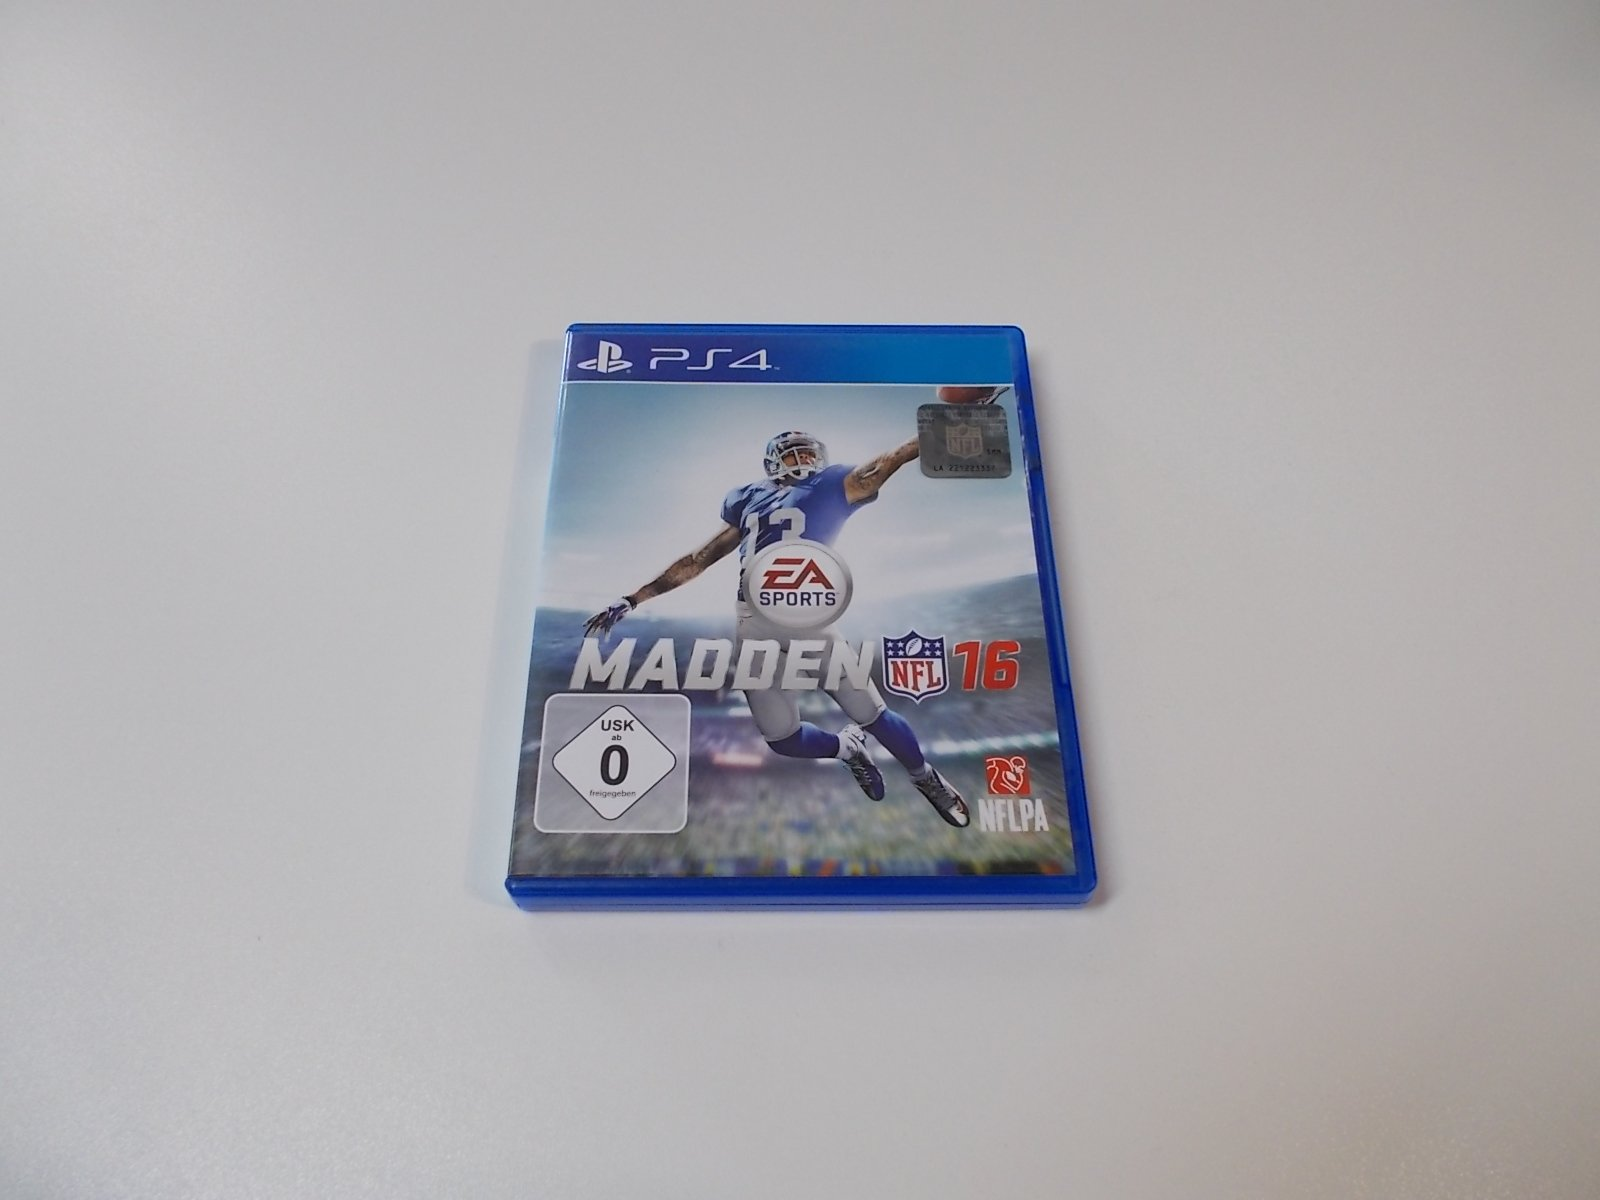 Madden NFL 16 - GRA Ps4 - Opole 0539